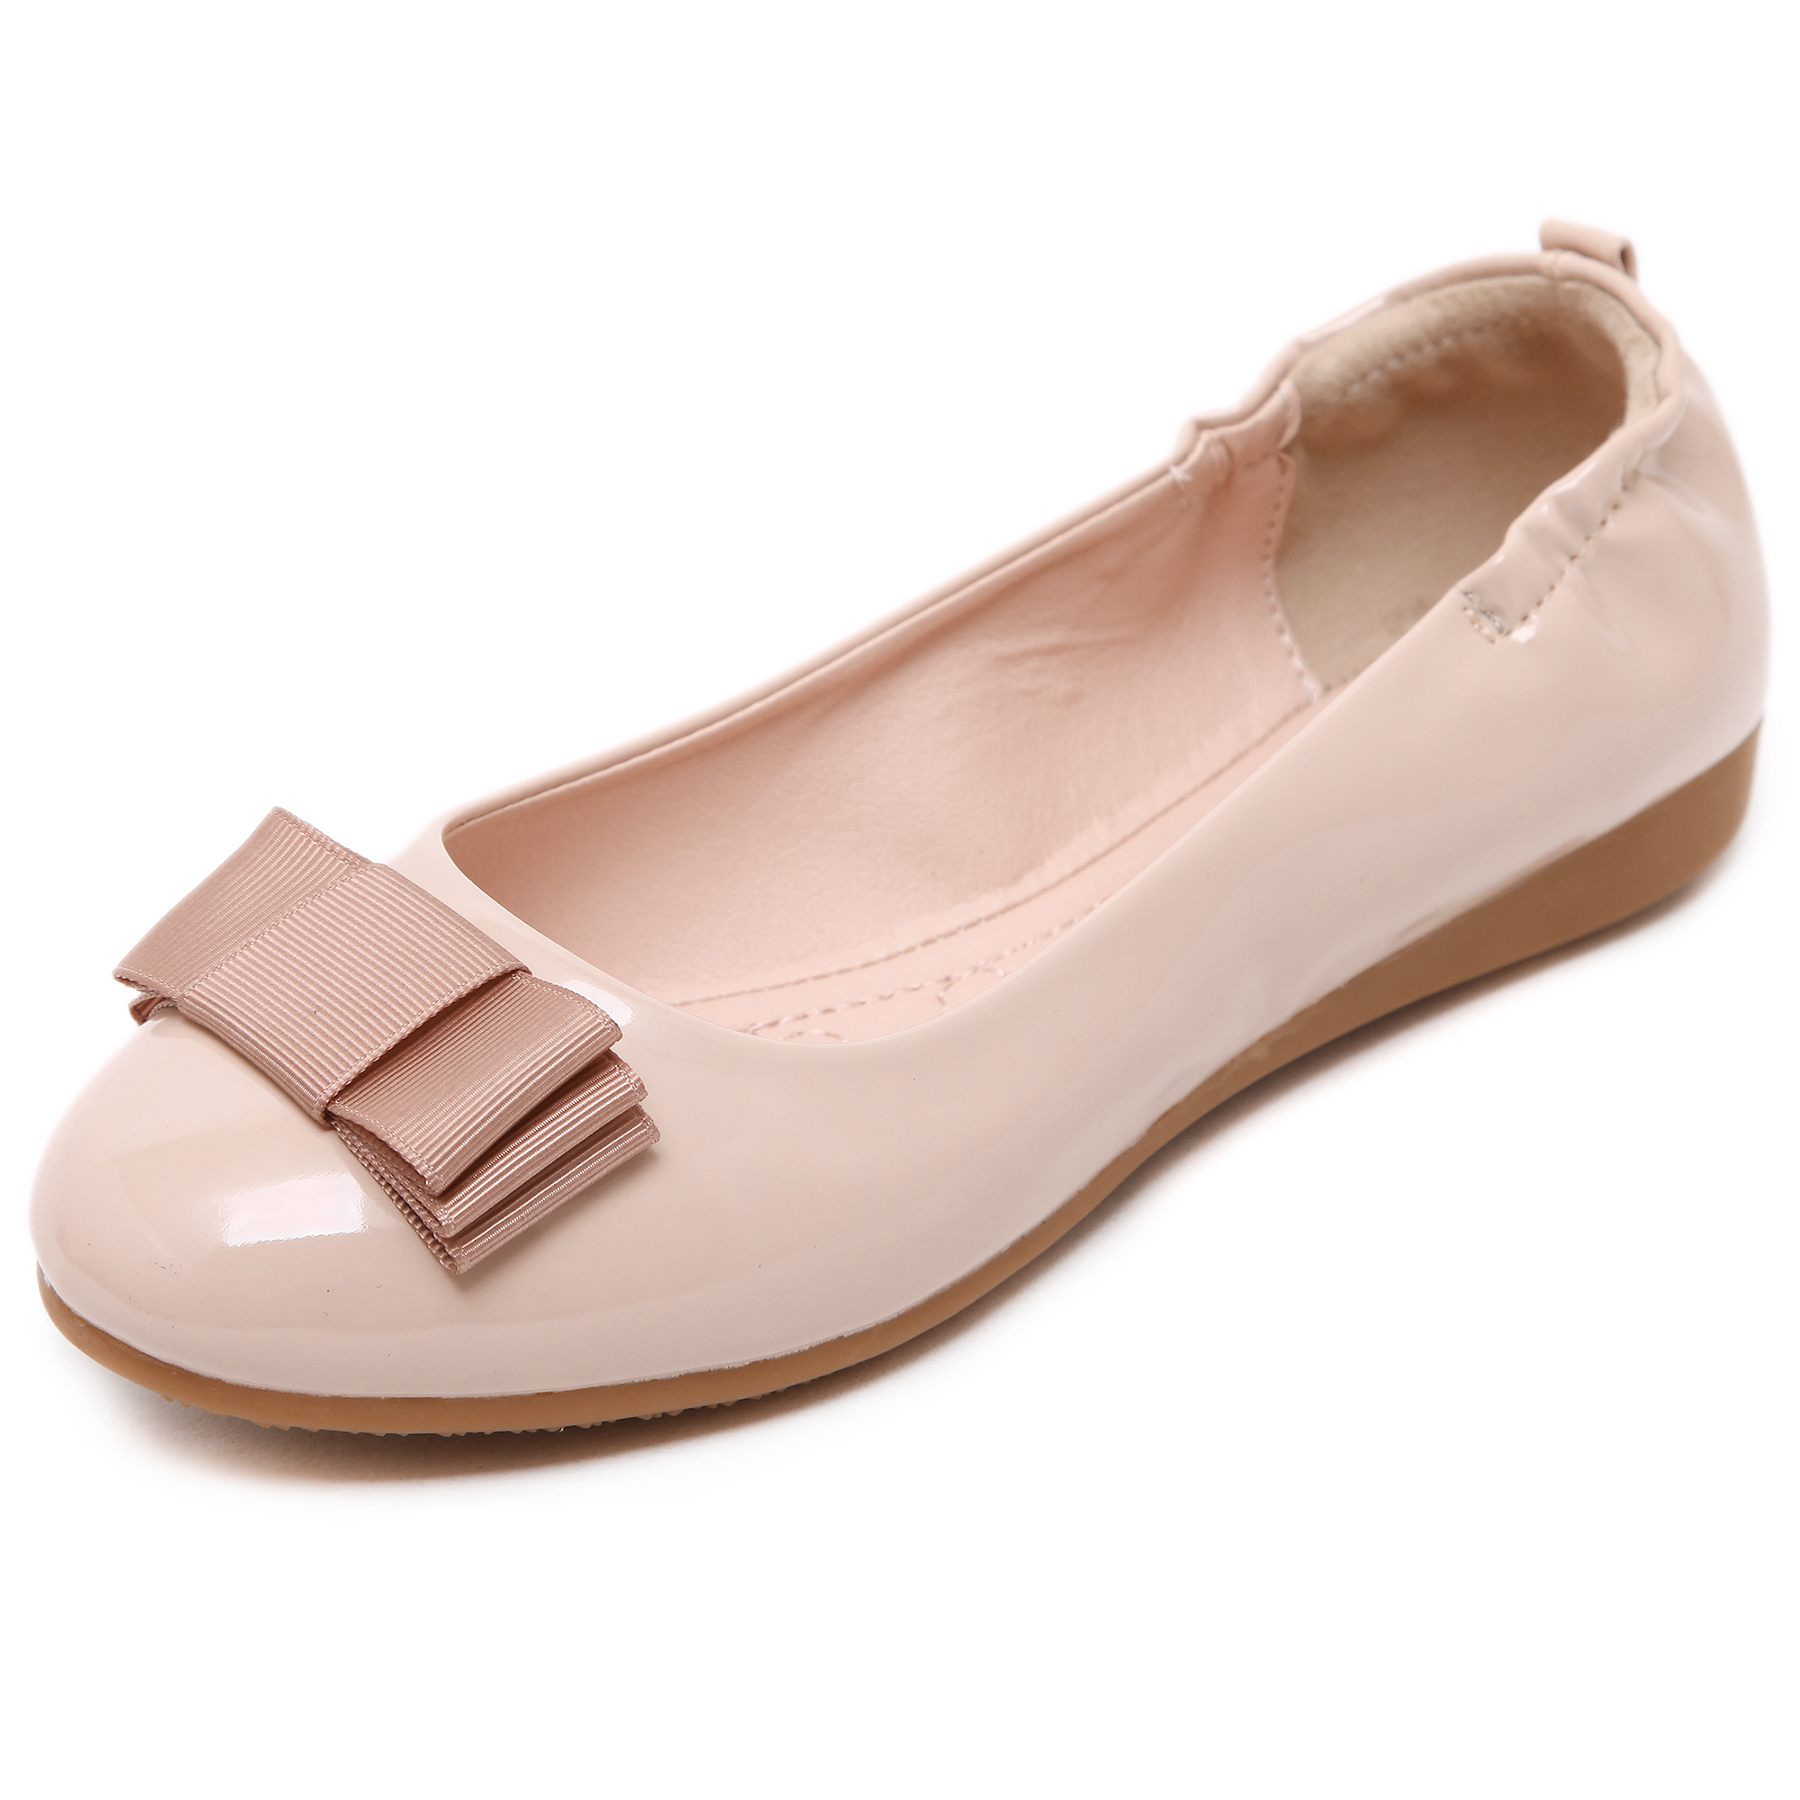 Brand New Fashion Casual Loafers Sweet Candy Colors Women Ballet Flats Solid Summer Style Shoes Woman 3 Colors Plus Size 35-40 fashion pointed toe women shoes solid patent pu brand shoes women flats summer style ballet princess shoes for casual crystal